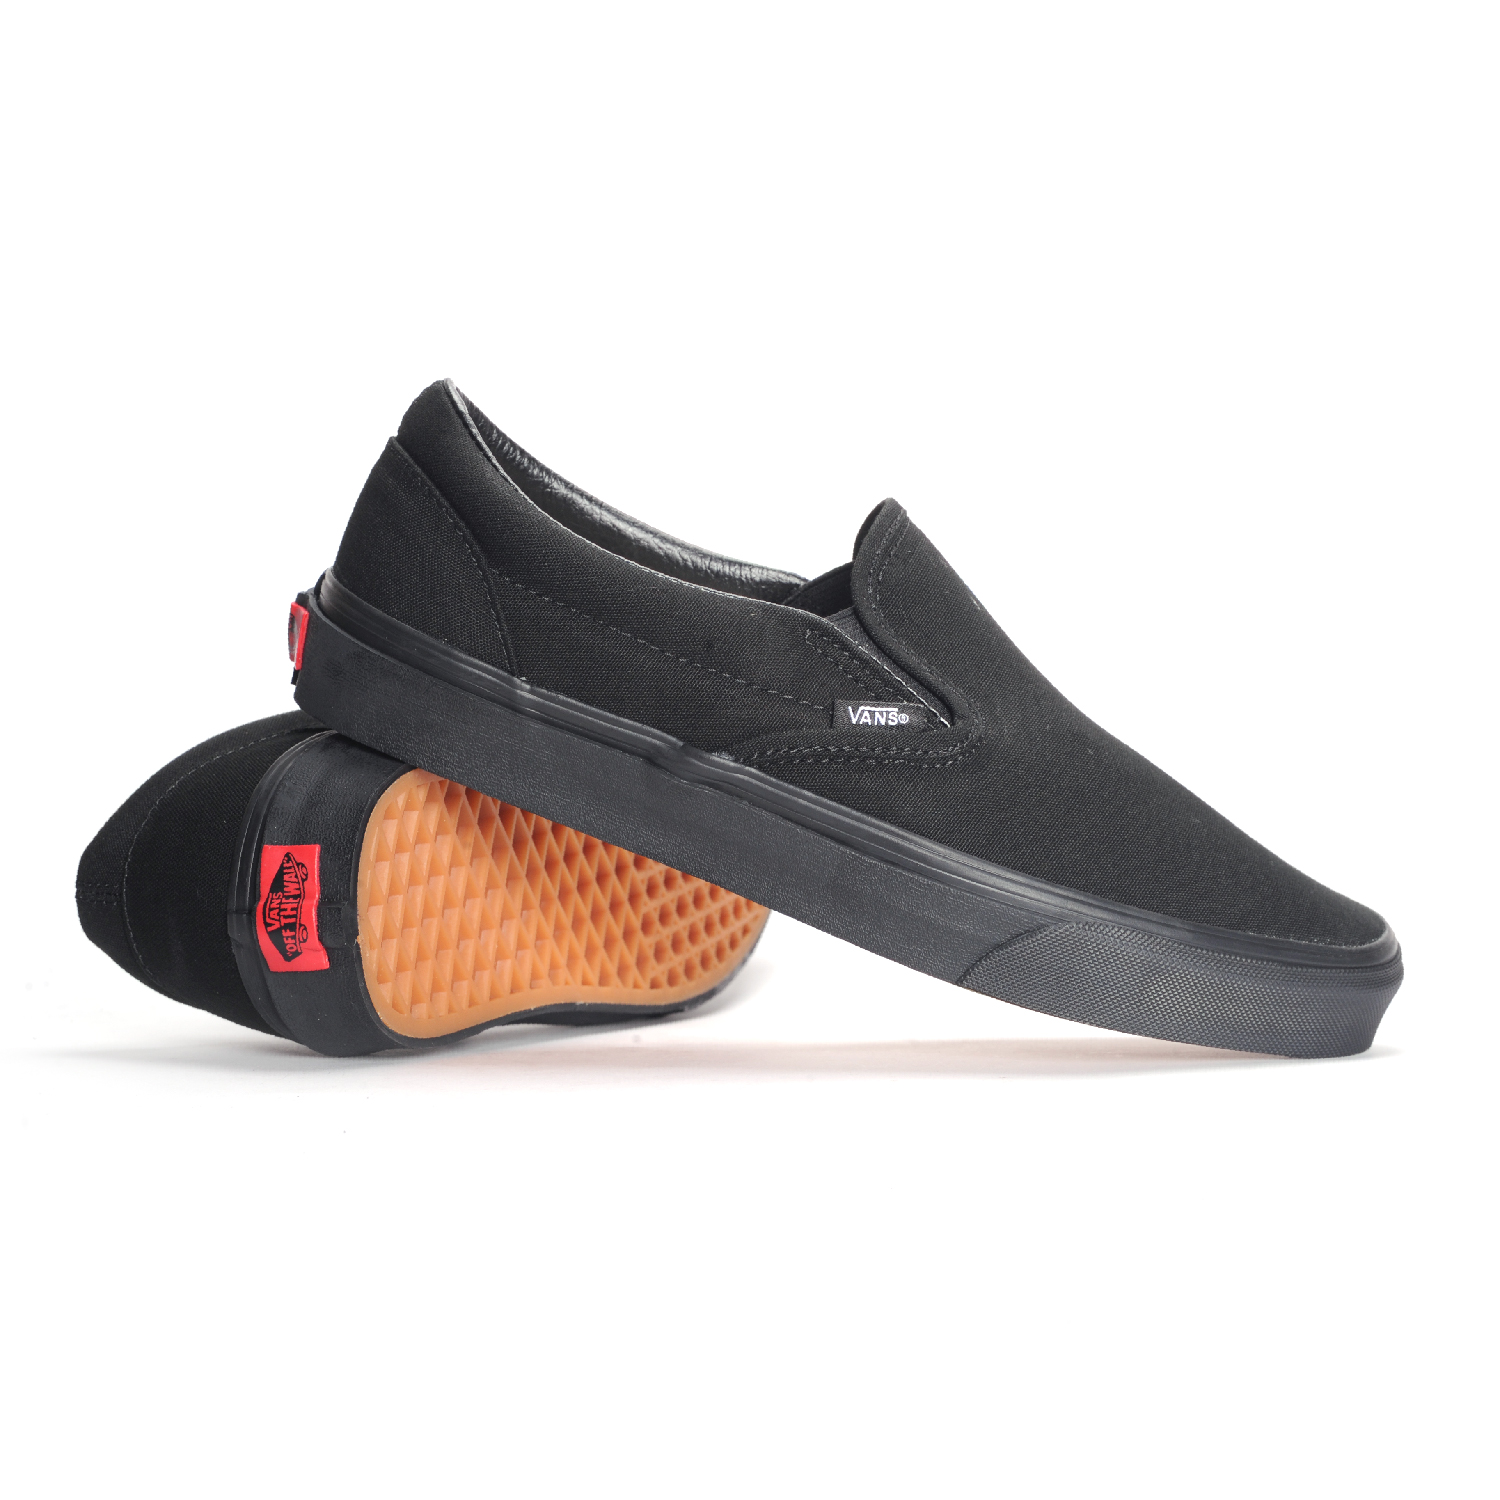 f89c04381ad UPC 700053338661. Vans Men s VANS CLASSIC SLIP-ON SKATE SHOES 10 (BLACK  BLACK)